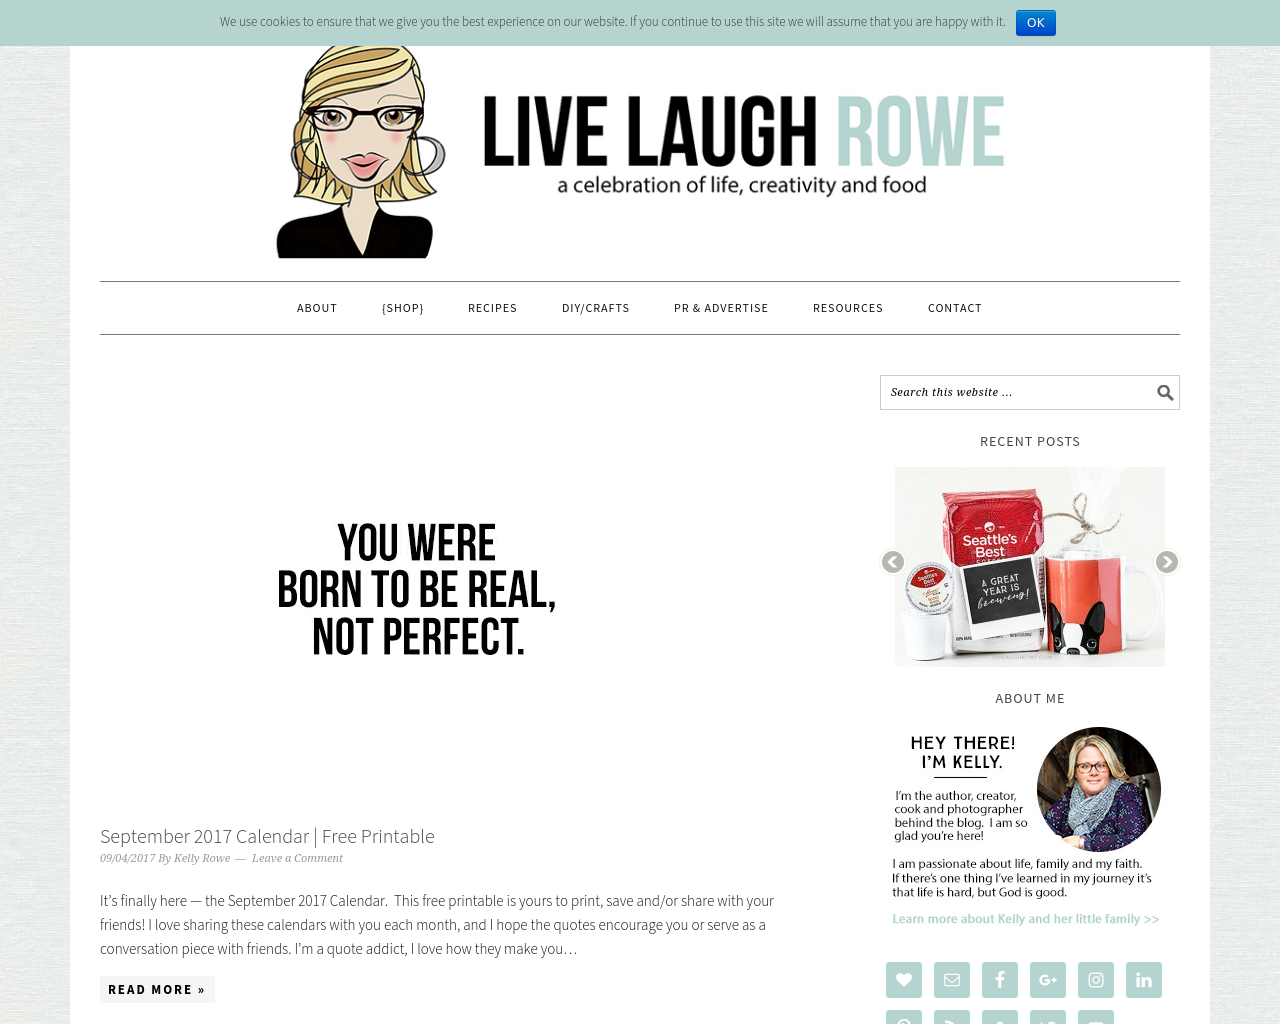 Live-laugh-rowe-Advertising-Reviews-Pricing